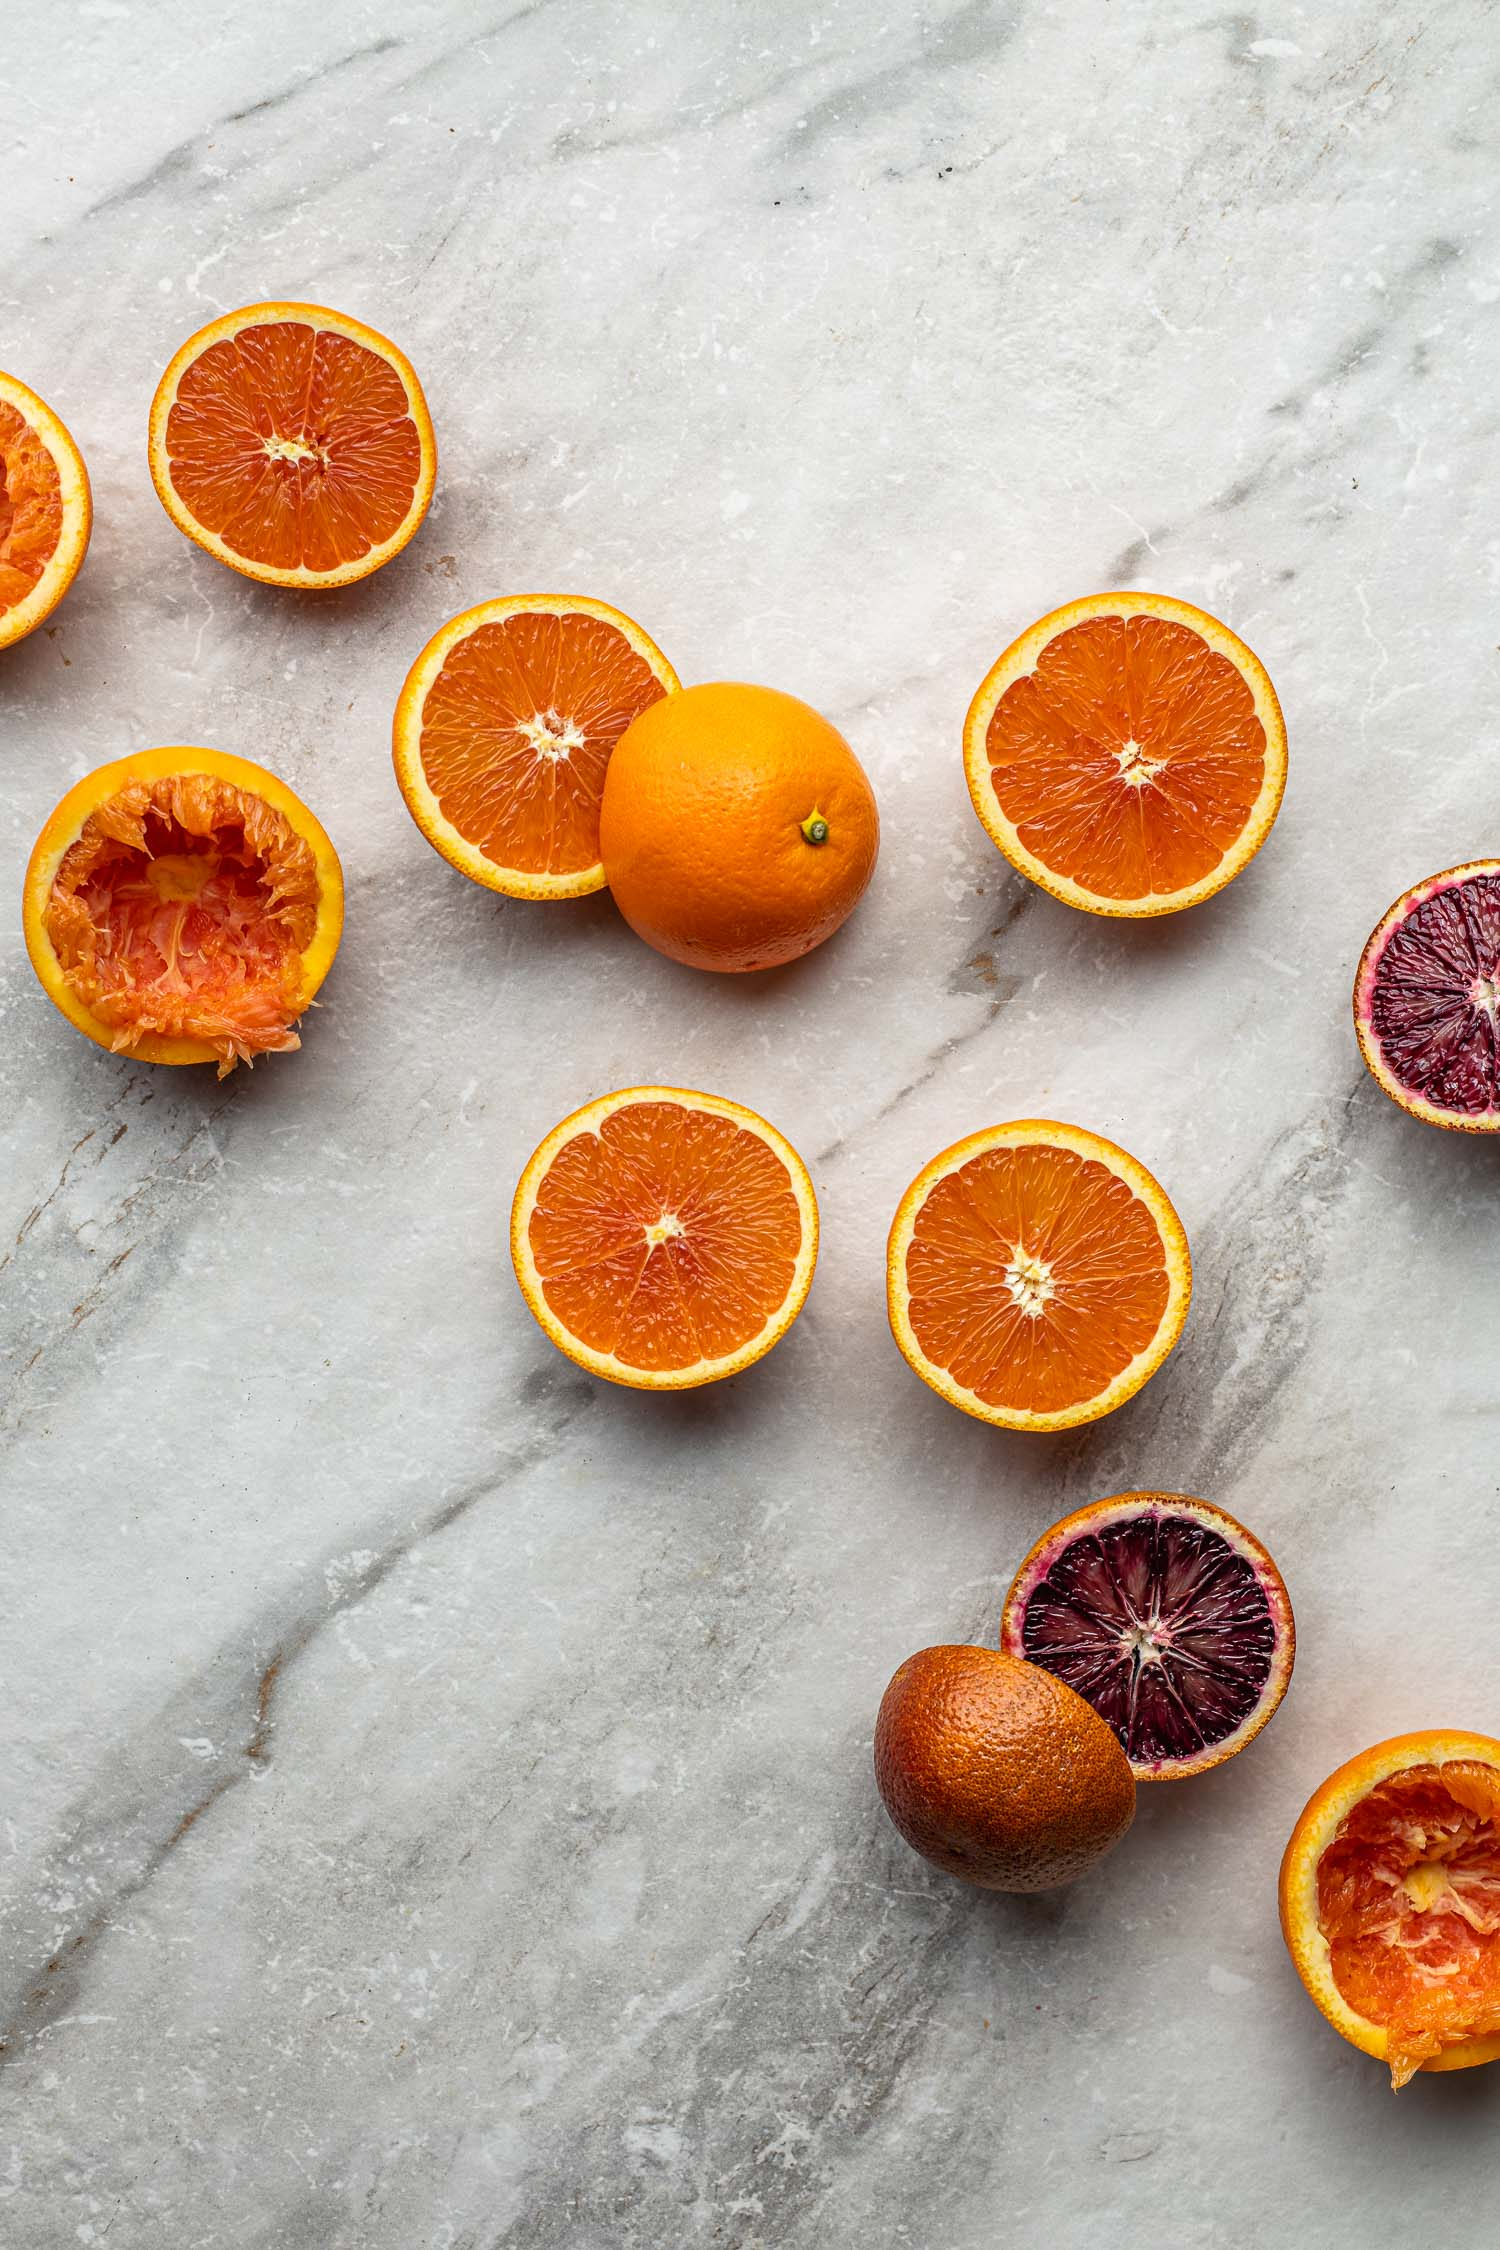 oranges sliced in half, including a couple of blood red oranges